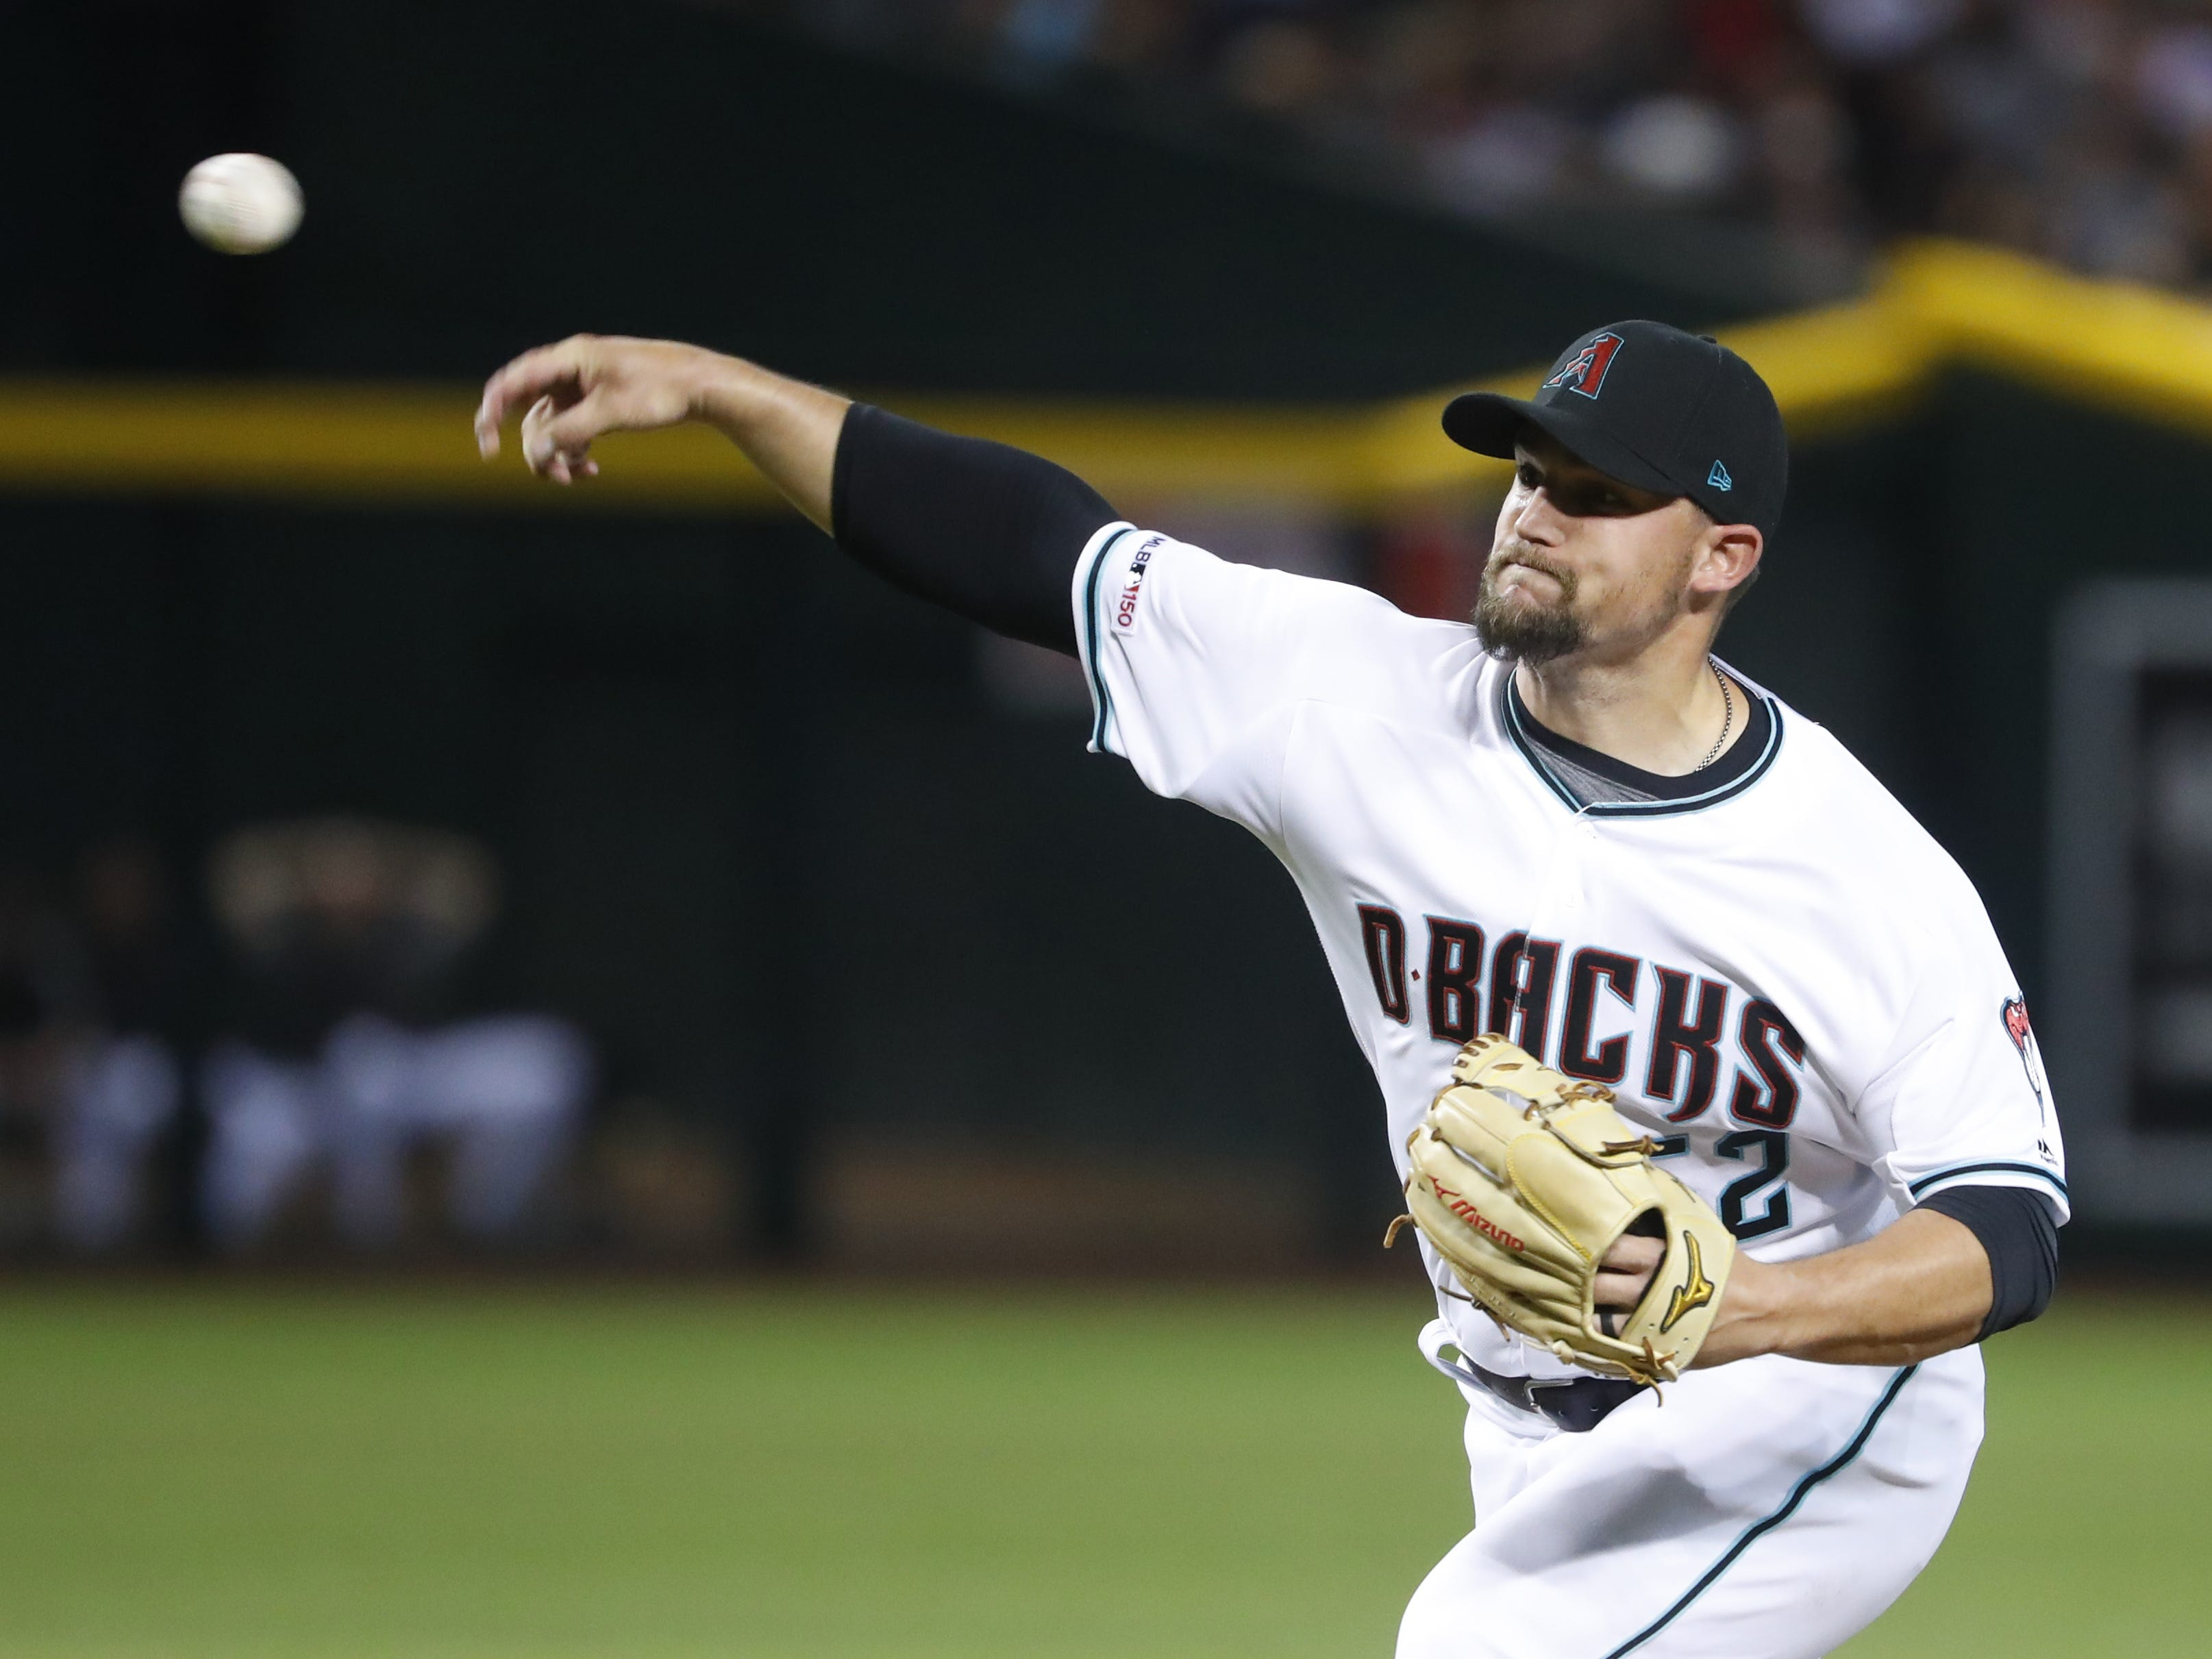 Diamondbacks pitcher Zack Godley pitches against the Red Sox during the first inning at Chase Field on the Opening Day for the Diamondbacks in Phoenix, Ariz. on April 5, 2019.